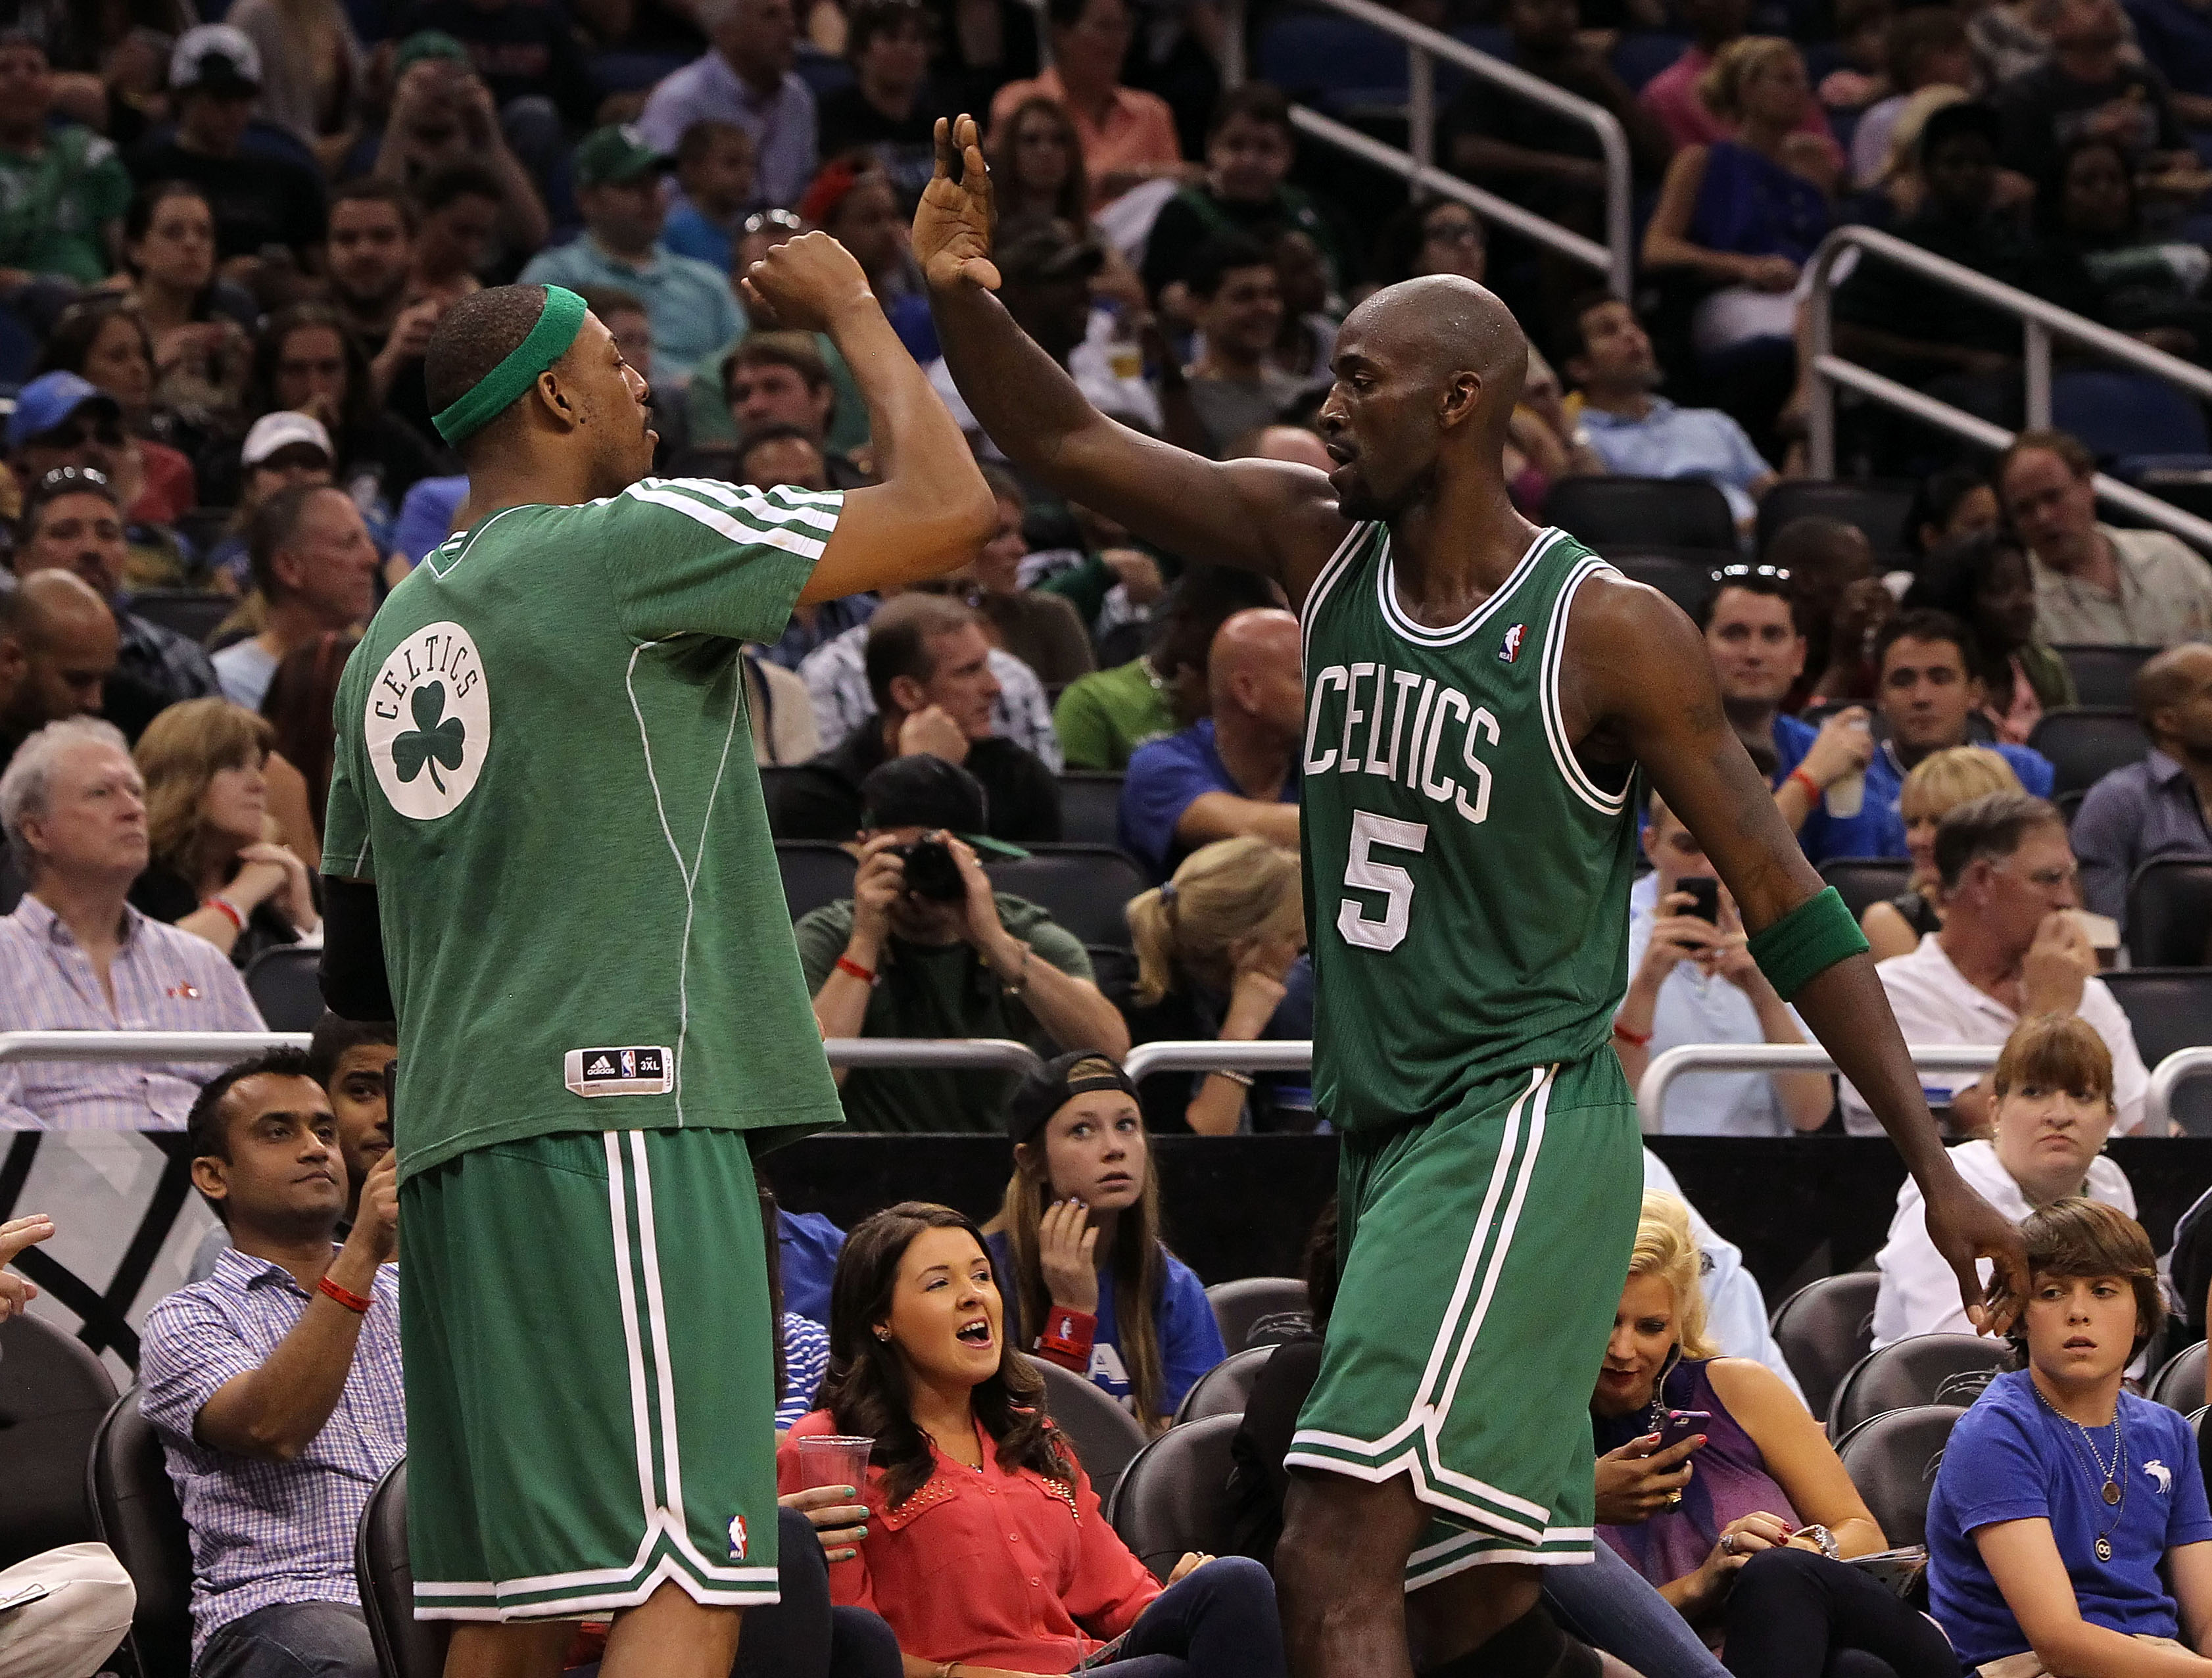 The Nets have discussed a possible deal to land Paul Pierce and Kevin Garnett. (USA Today Sports)